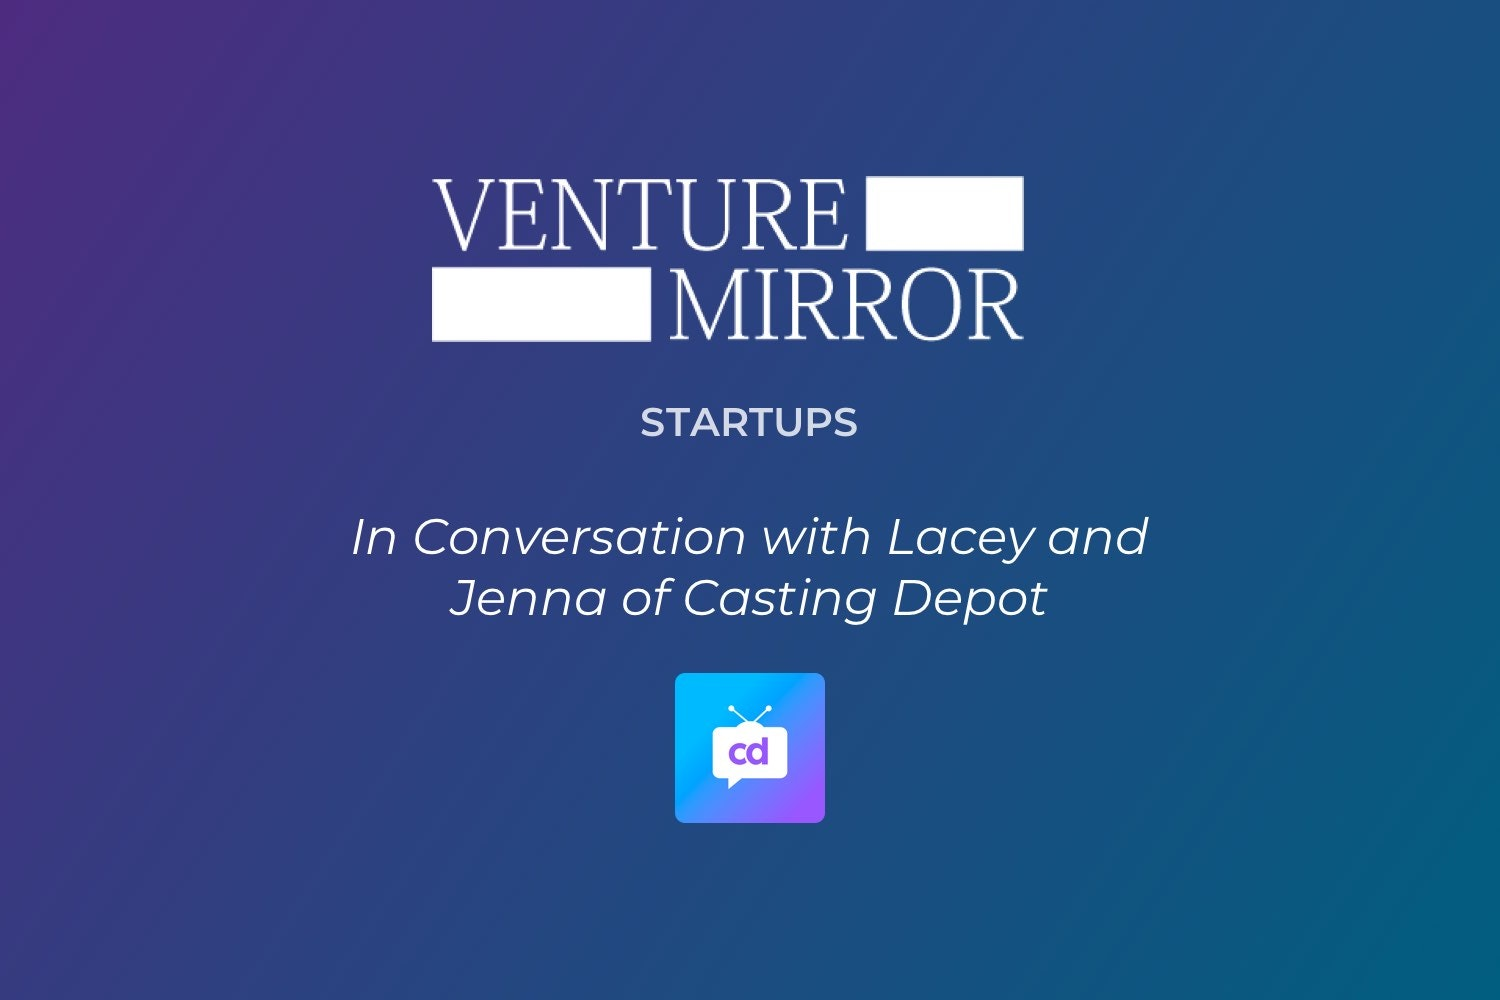 Cover Image for Venture Mirror In Conversation with Lacey and Jenna of Casting Depot